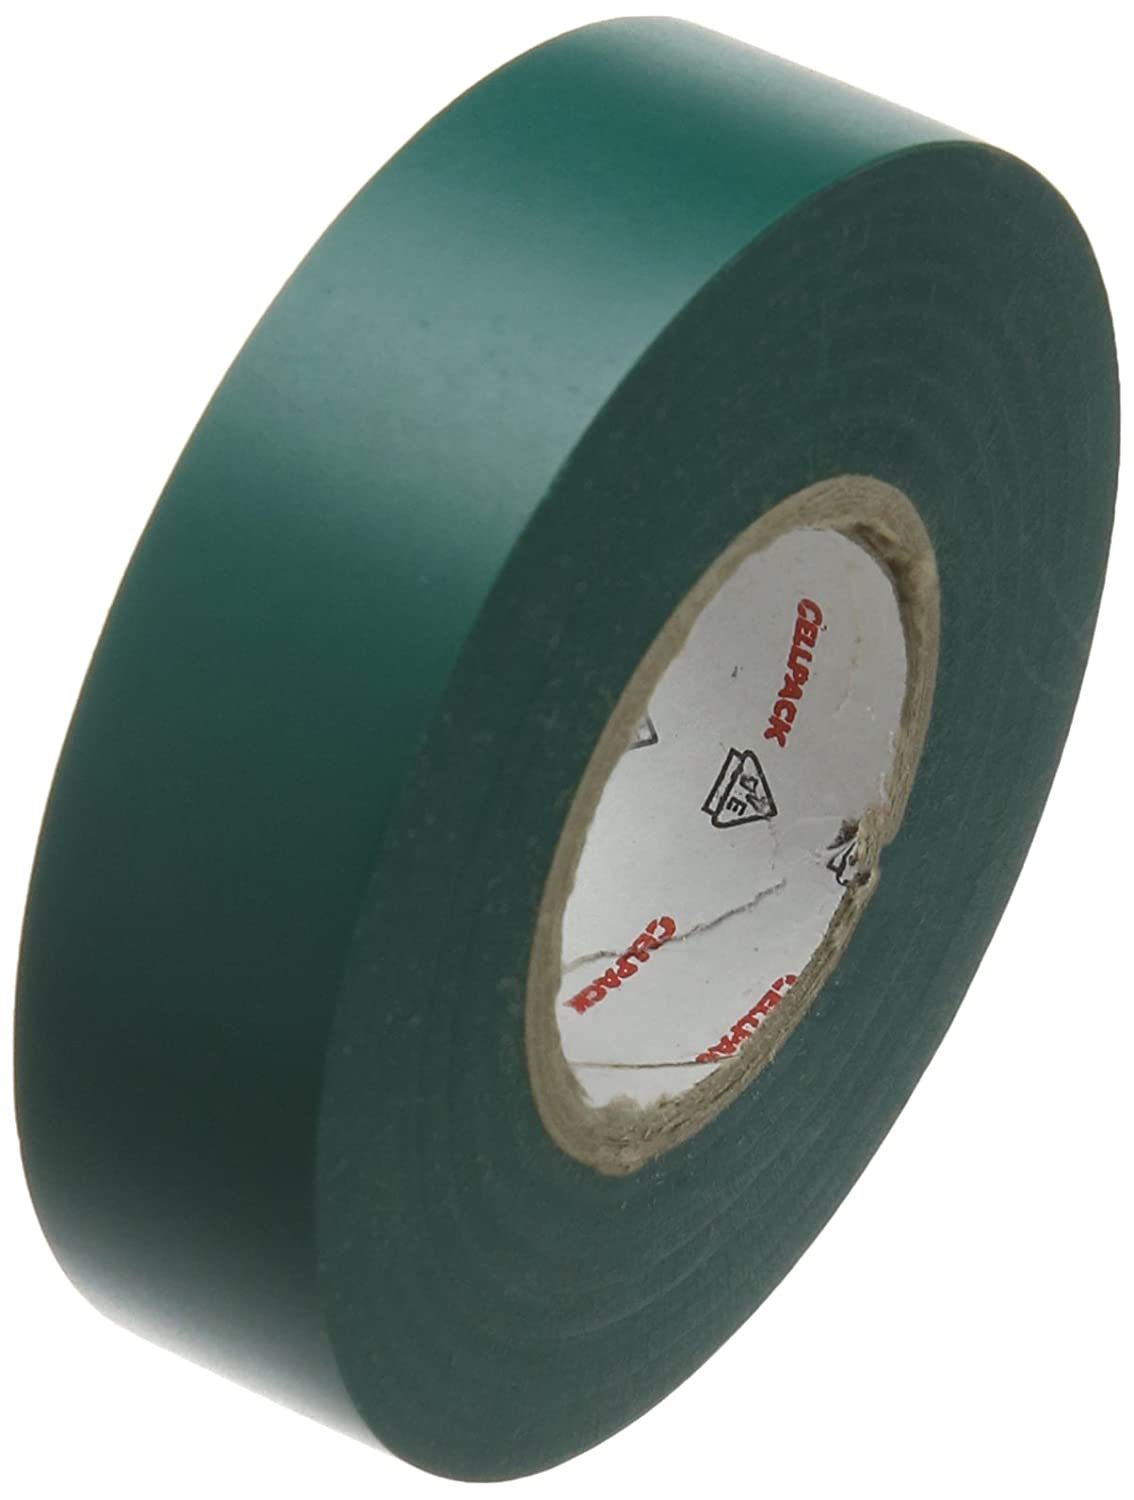 Cellpack 145802  128  0.15-19-25, PVC Electrical Insulation Tape, Green